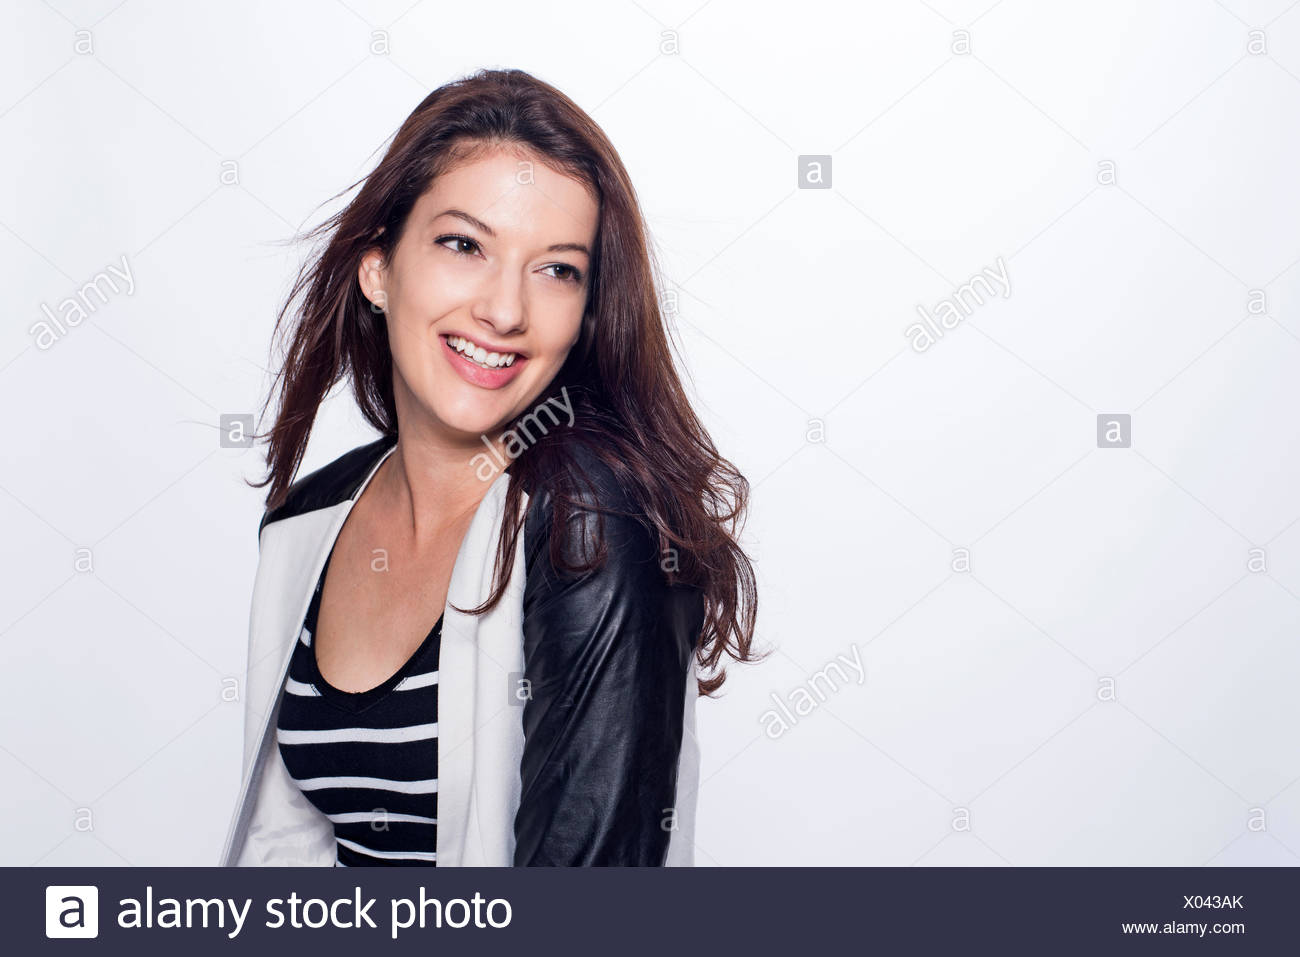 Studio portrait of young woman with long dark hair, smiling - Stock Image